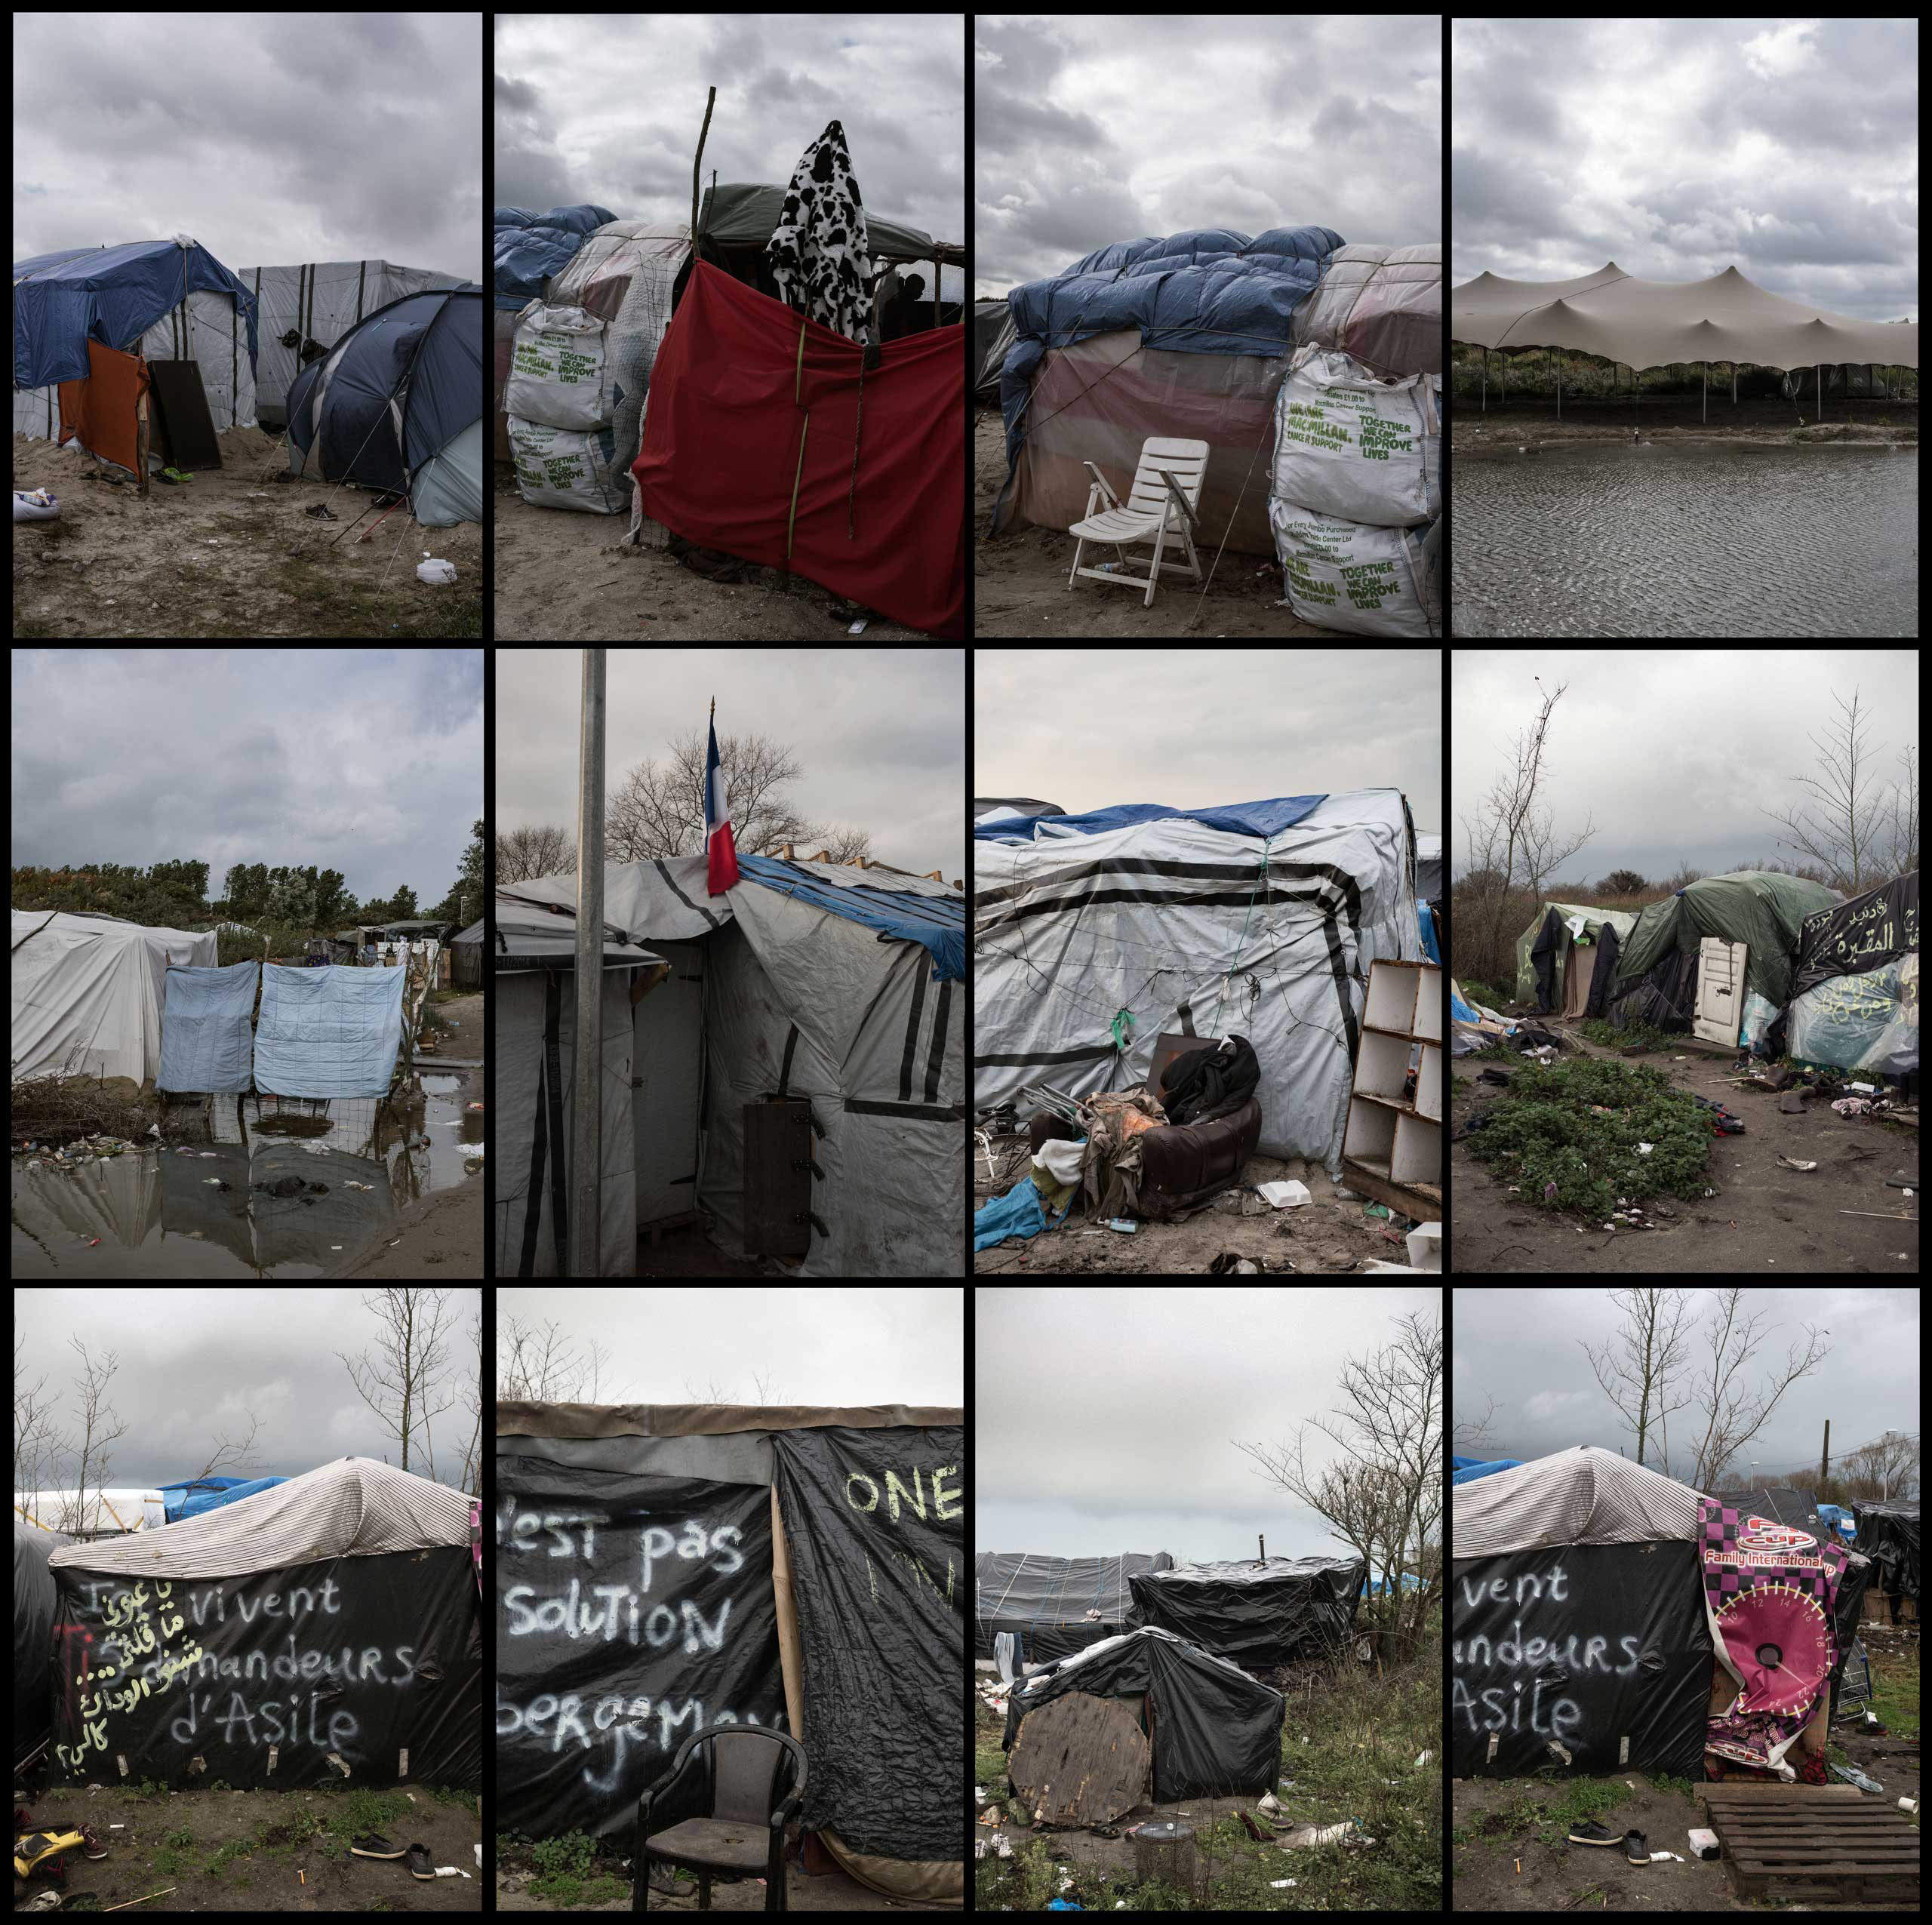 A grid showing various make-shift dwellings for migrants in the shantytown known as the  jungle  in Calais, France, where 4,000 migrants, refugees, and asylum seekers have sought shelter before attempting to make their way to the United Kingdom, 2015.